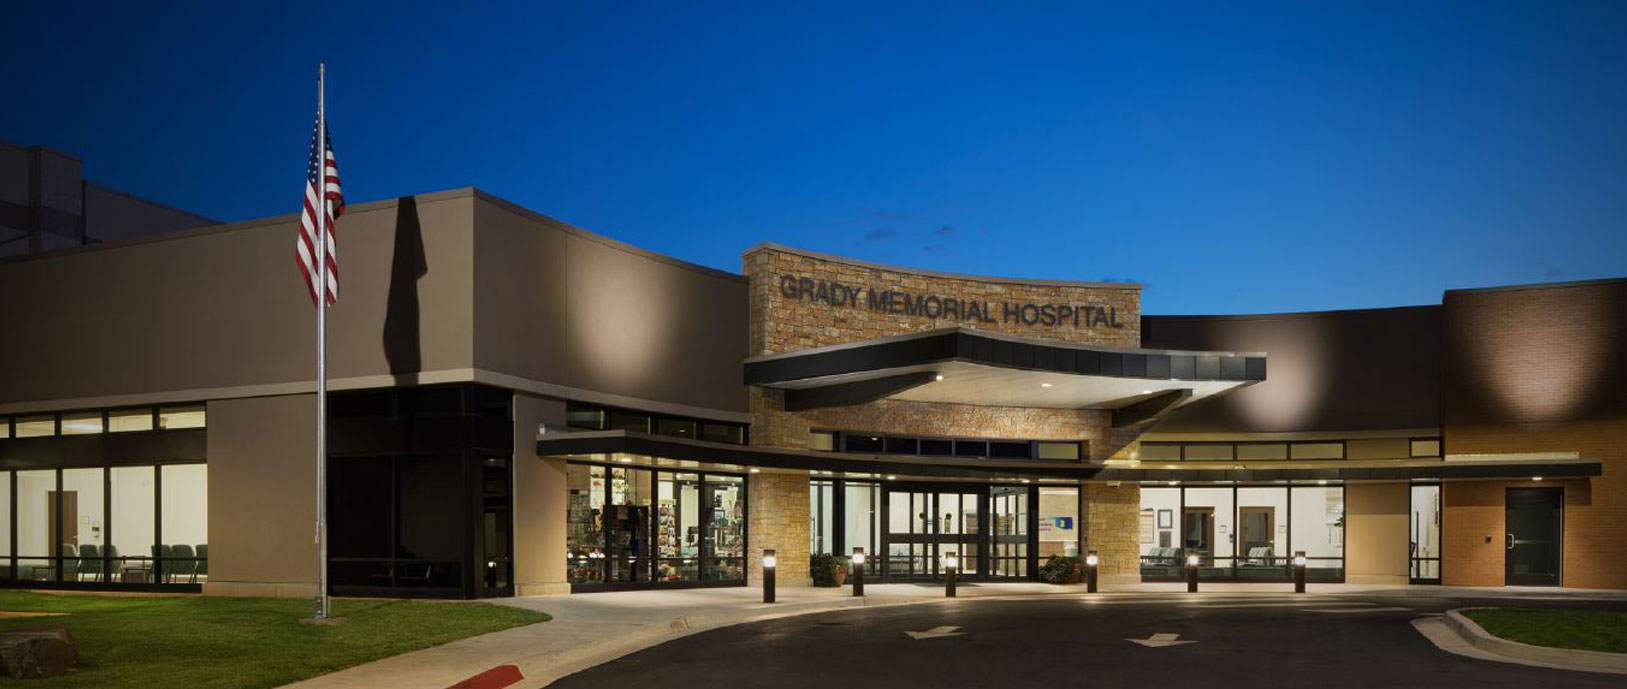 Picture of THE GRADY MEMORIAL HOSPITAL front entrance.